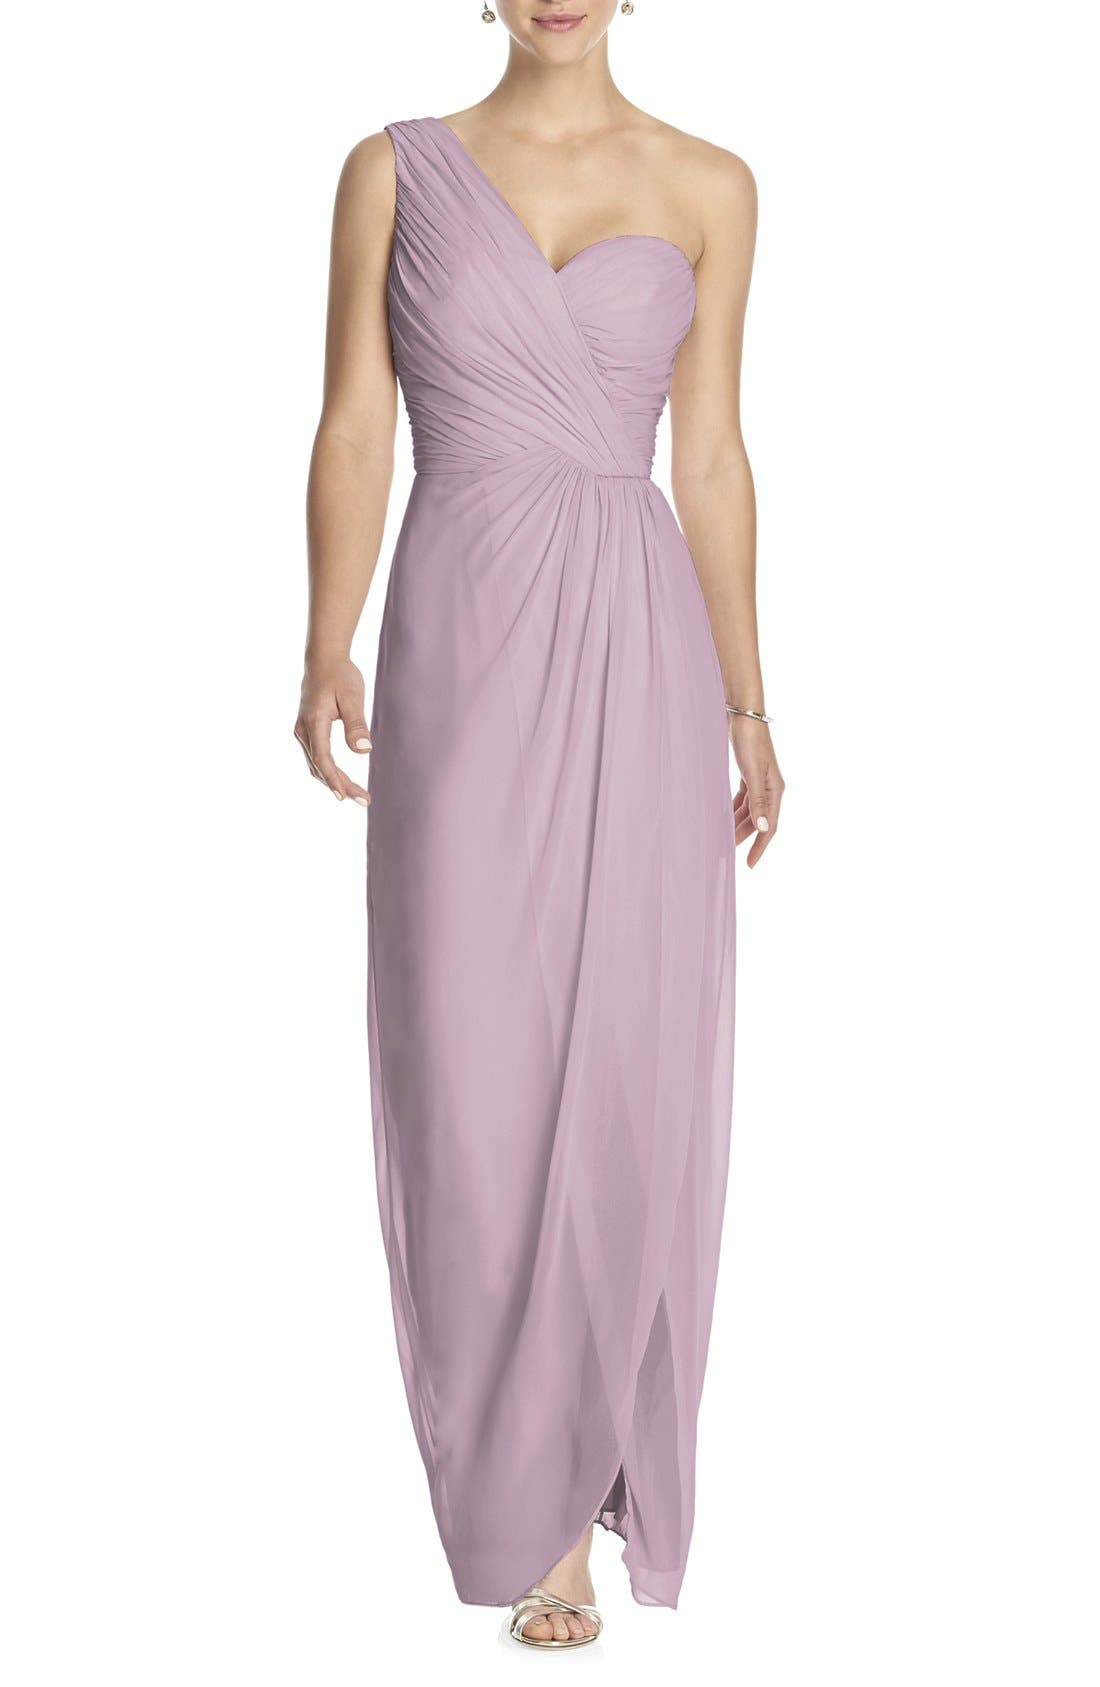 DessyCollection One-Shoulder Draped Chiffon Gown,                         Main,                         color, Suede Rose